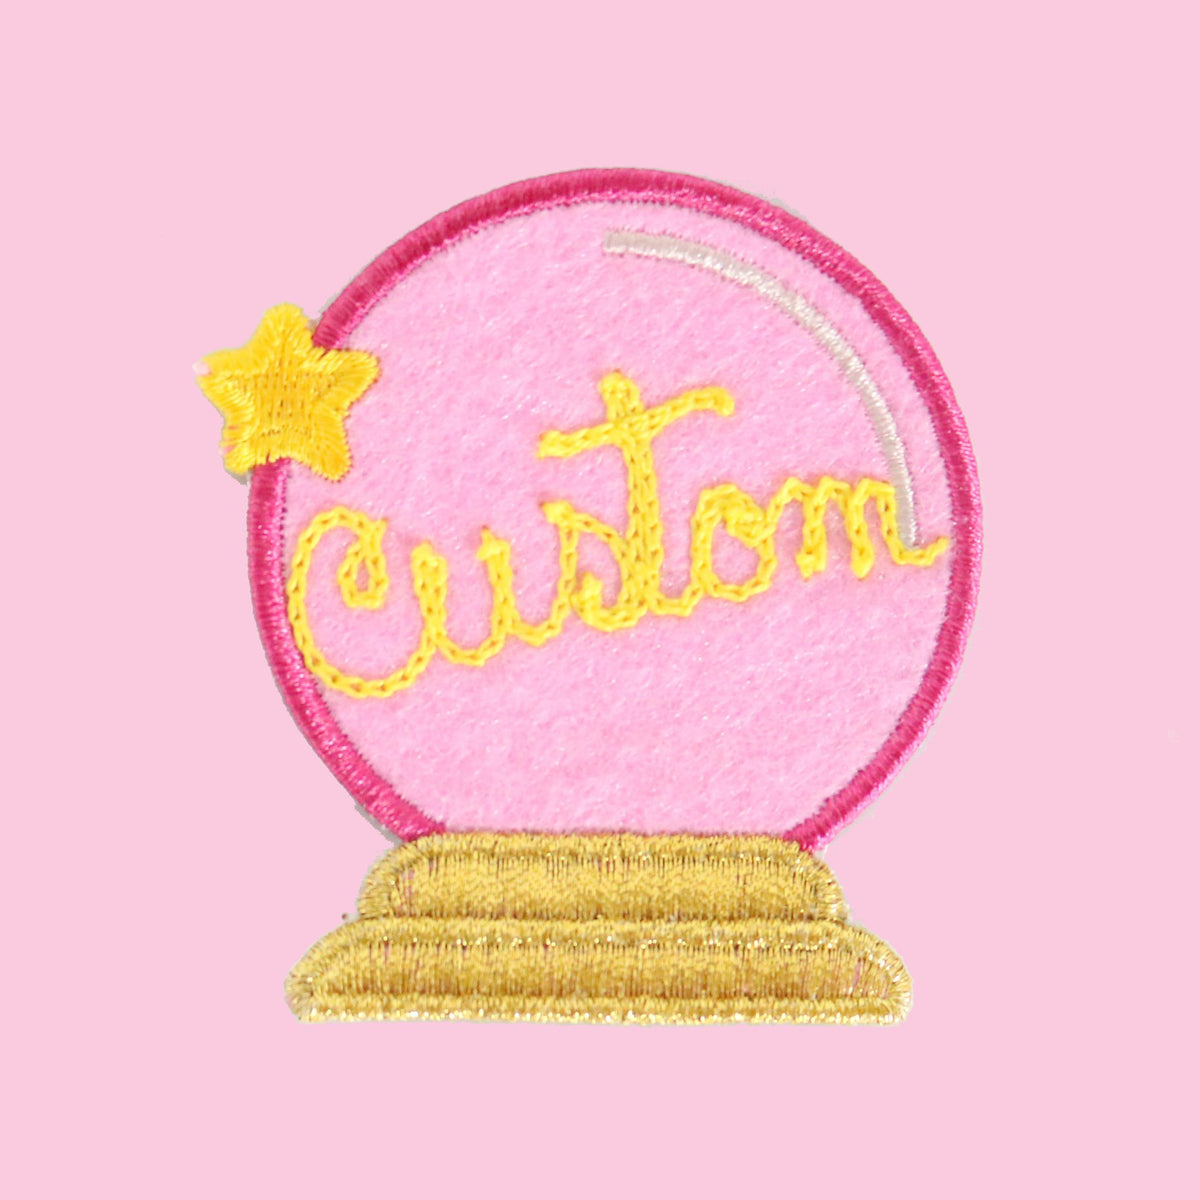 Custom Crystal Ball Patch - Daily Disco